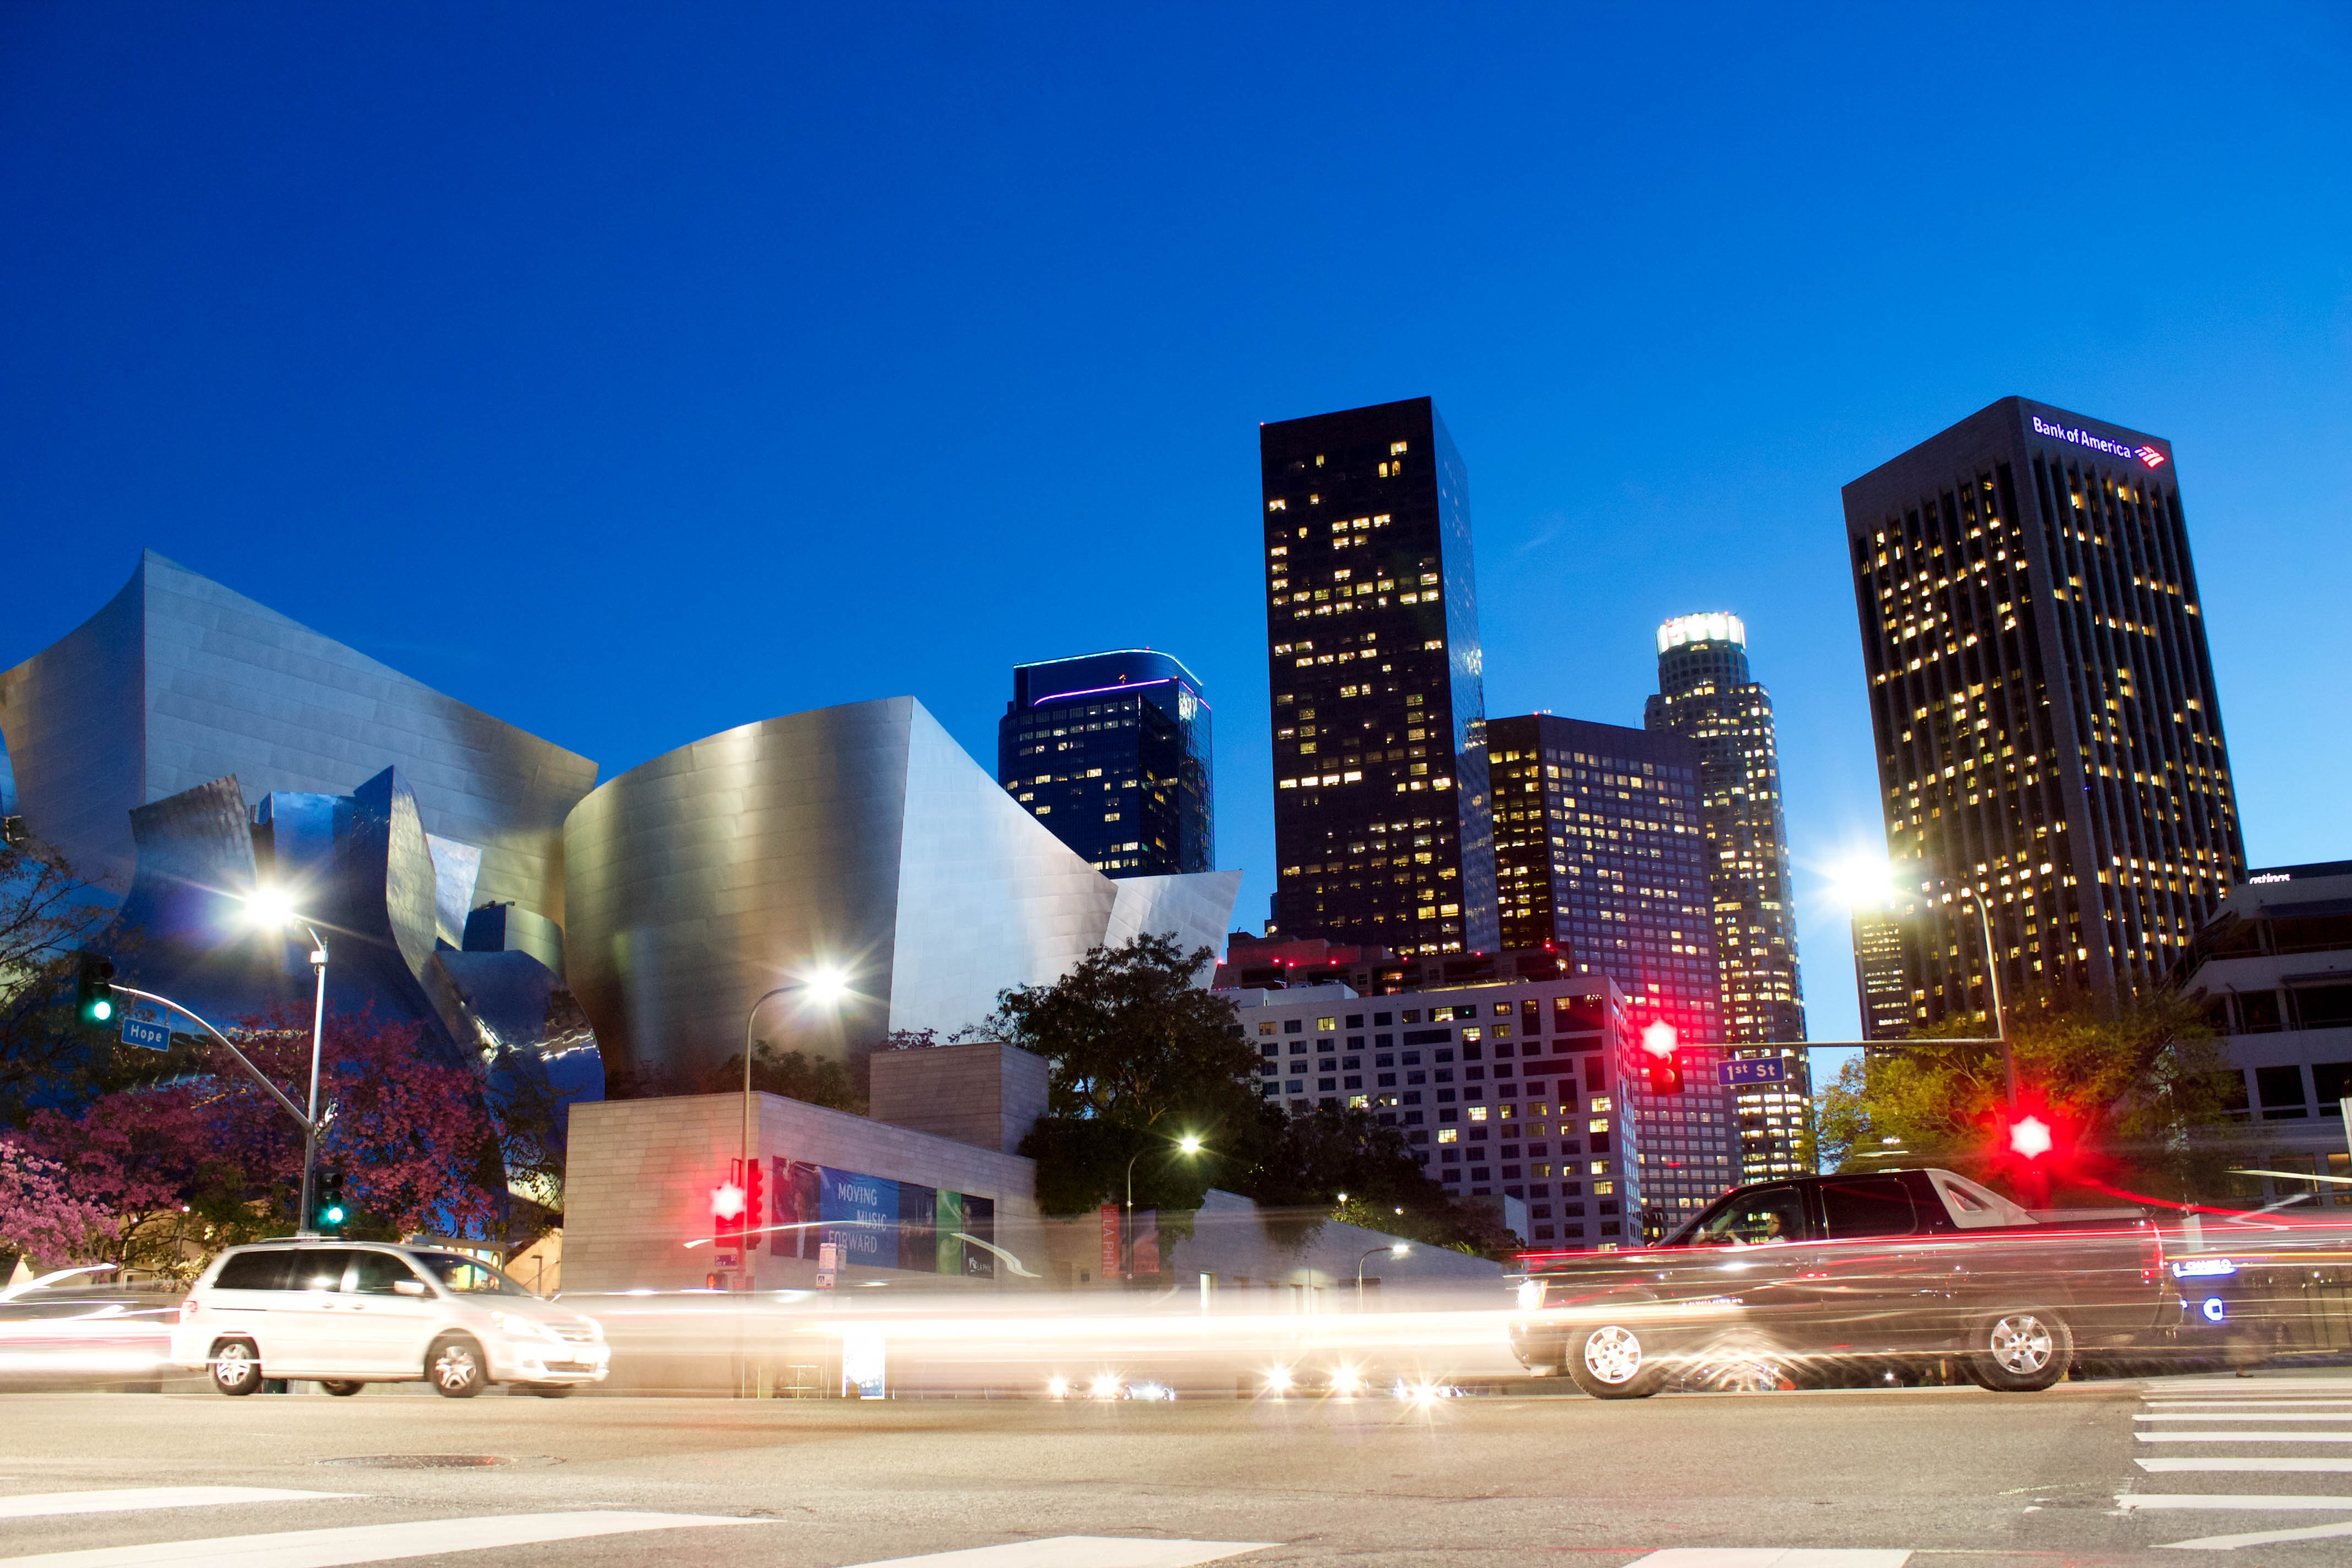 A long-exposure shot of cars in a street of Los Angeles with a modern silver building at the back